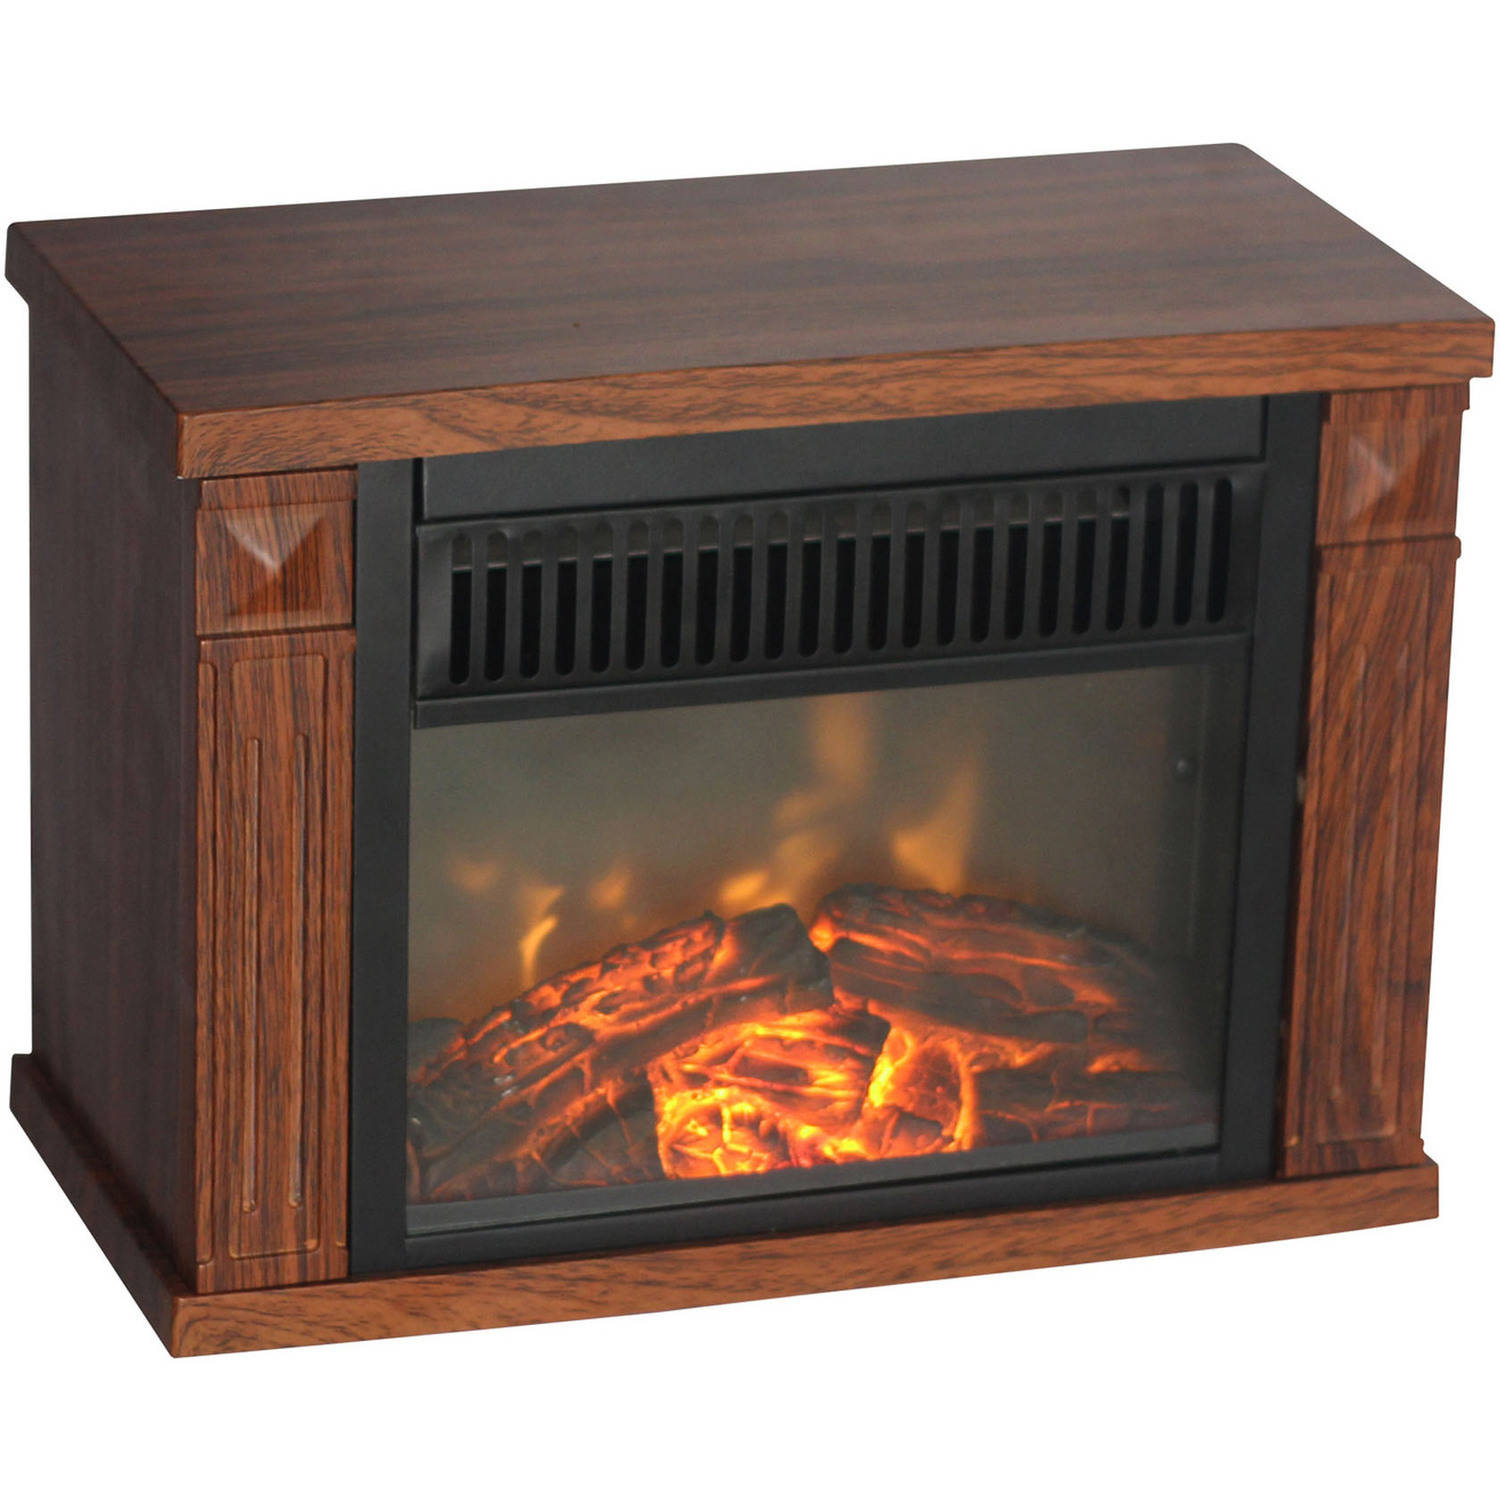 Comfort Glow Bookshelf Mini Fireplace Wood Grain Walmart Com